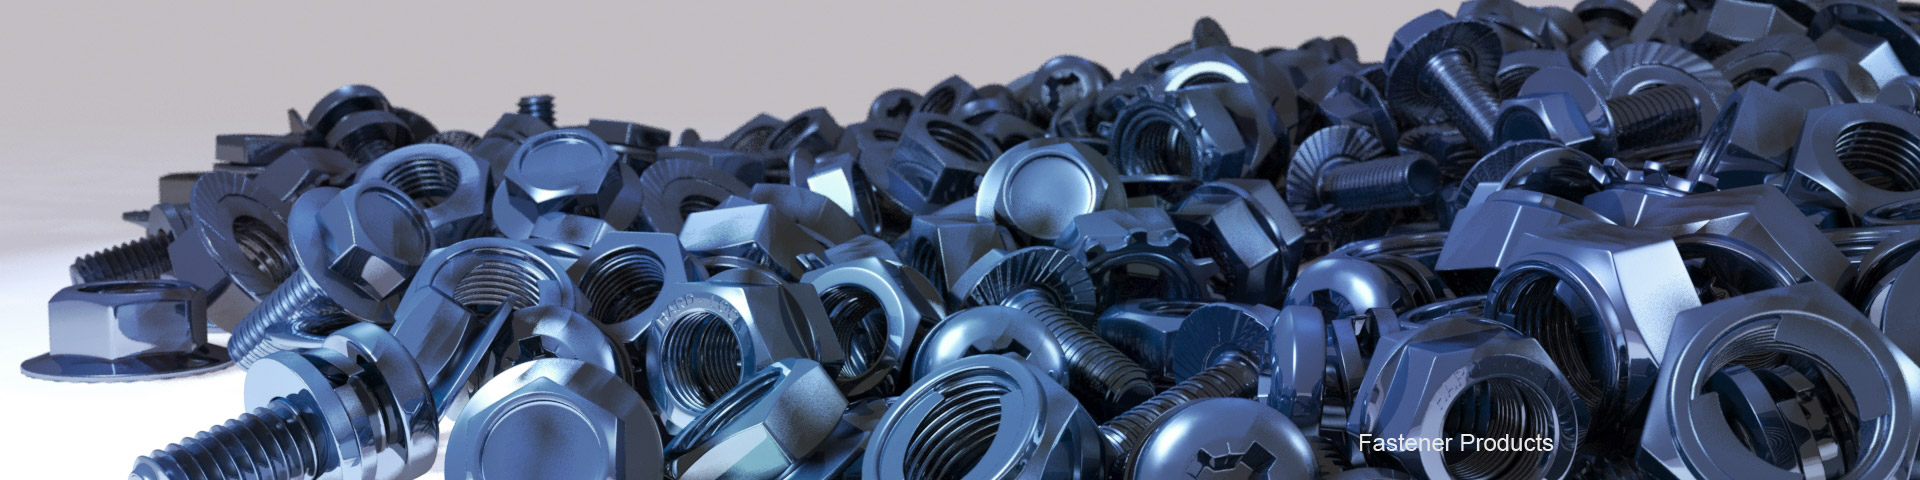 01fasteners